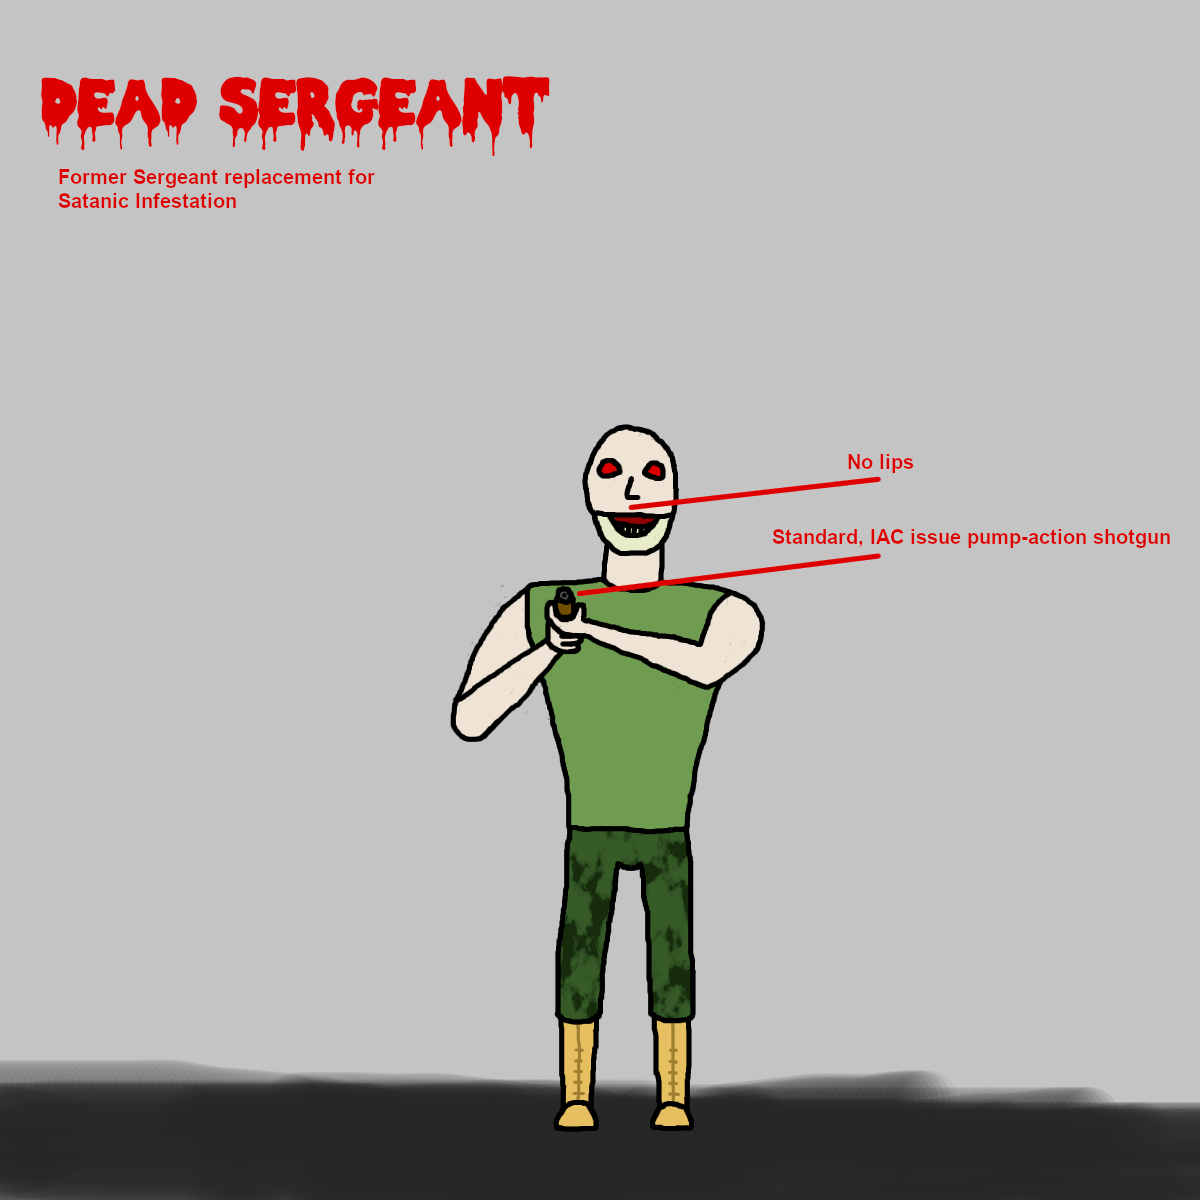 2106584081_formersergeant.png.a91cb3acbb7273673abfabe07e1eb2a8.png